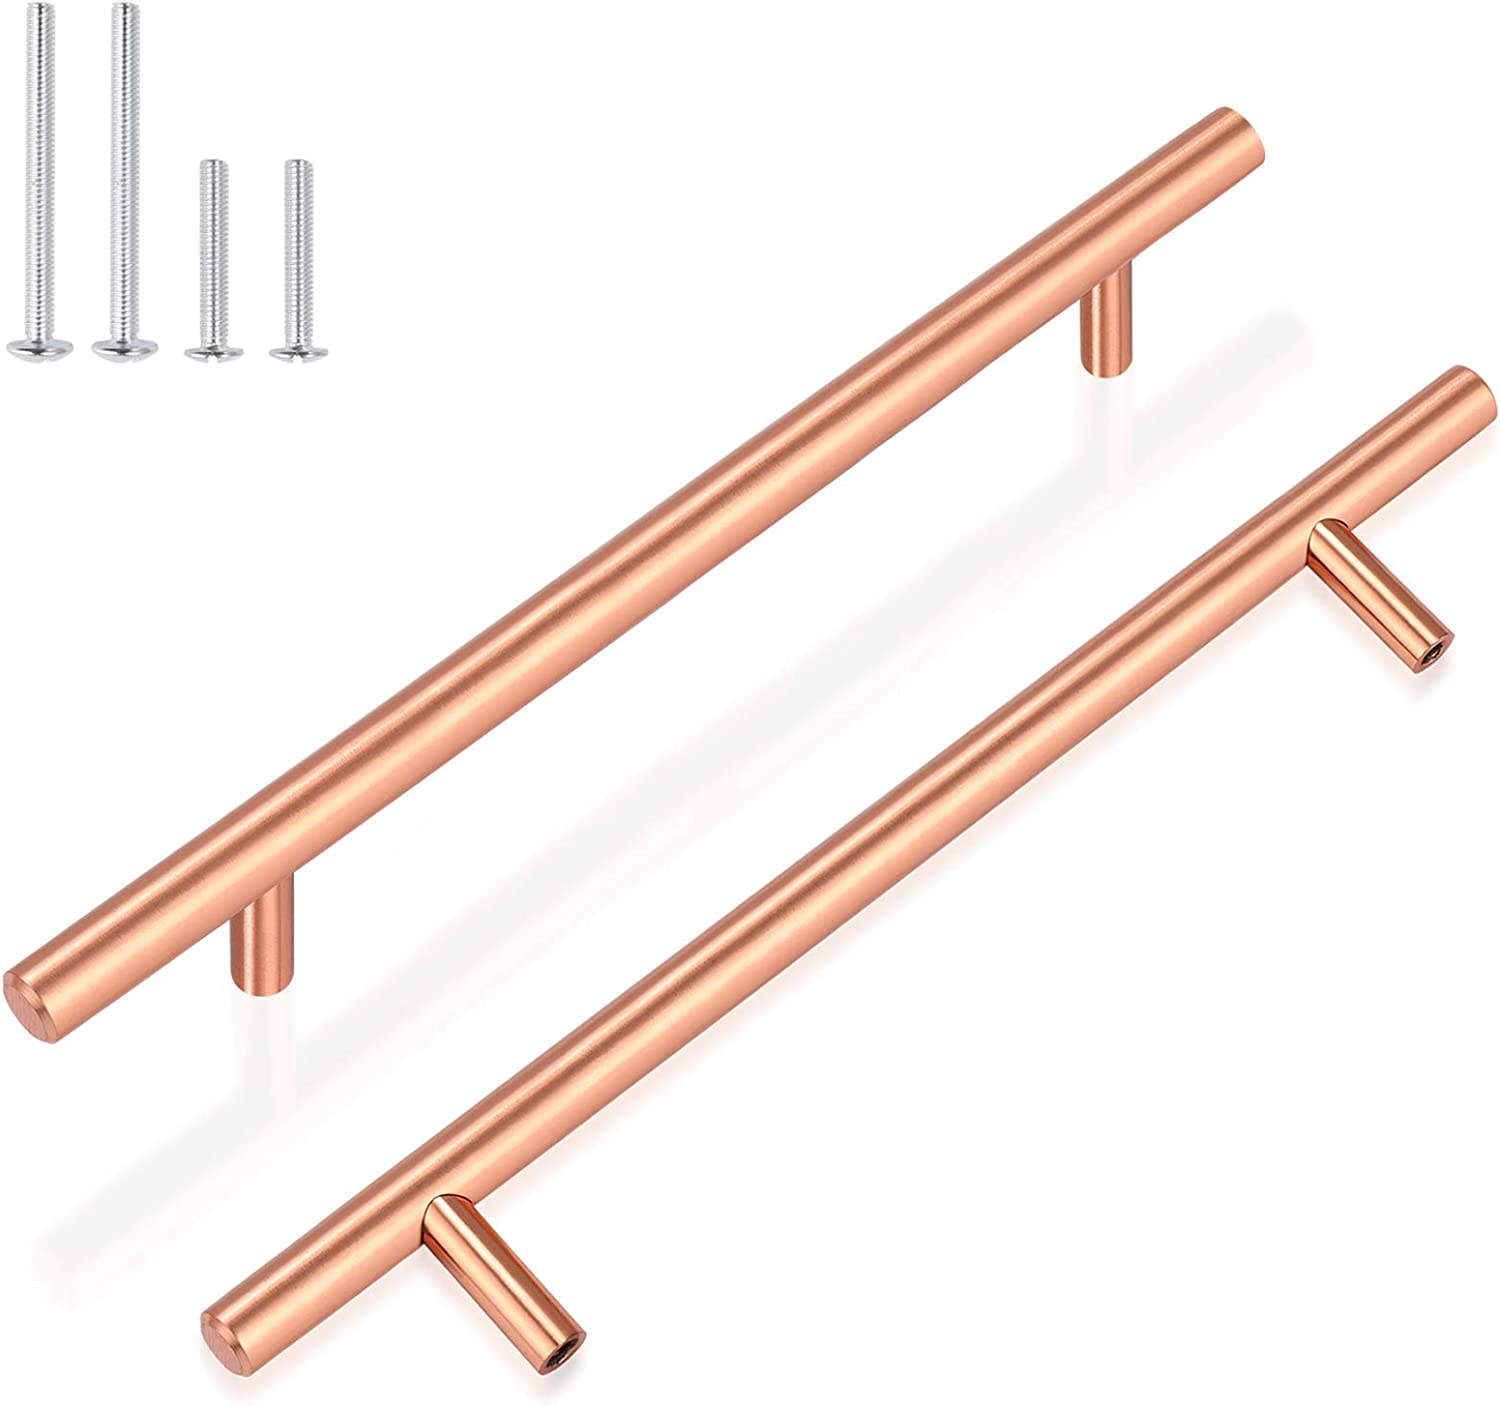 Ranking TOP5 GOBEKOR 10 Pack Cabinet Handles 6-3 K Center Hole Gold Max 83% OFF 10in Rose